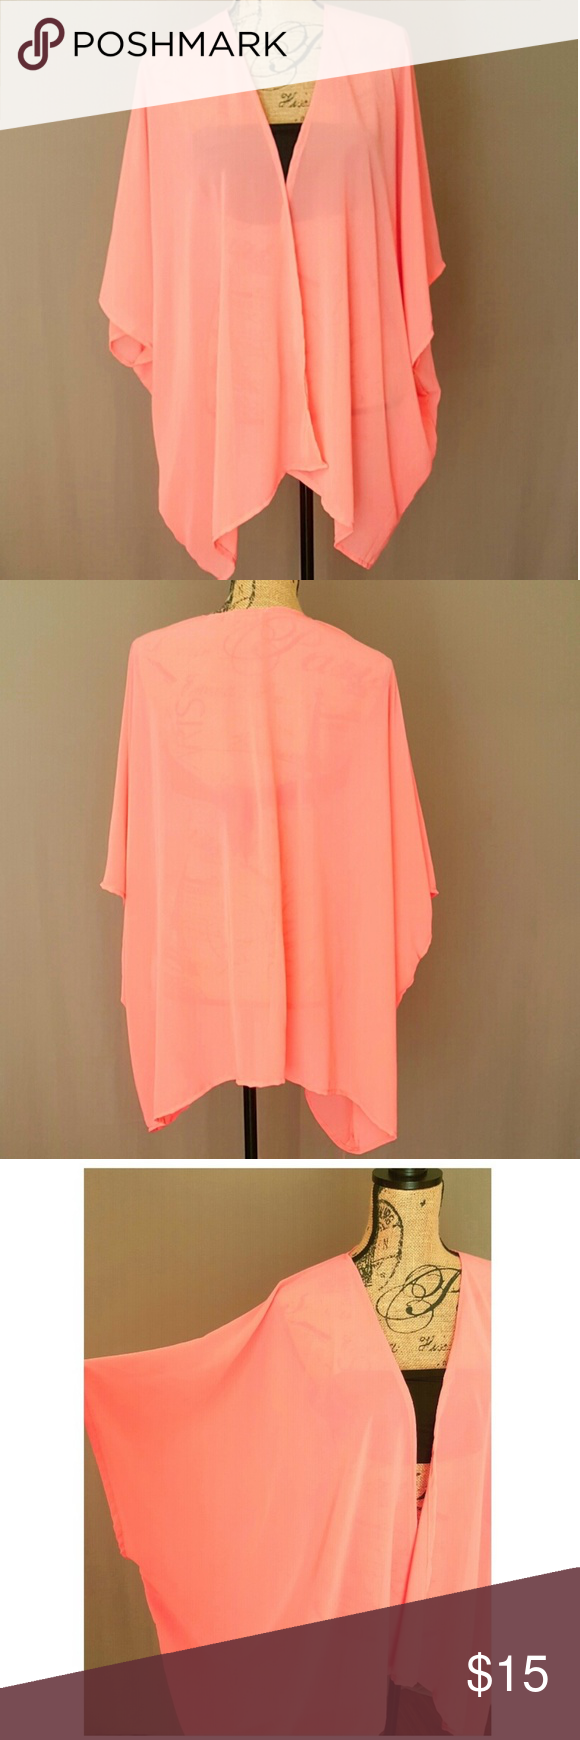 Sale! Sheer Salmon Kimono Cover up This cardigan was designed with ...